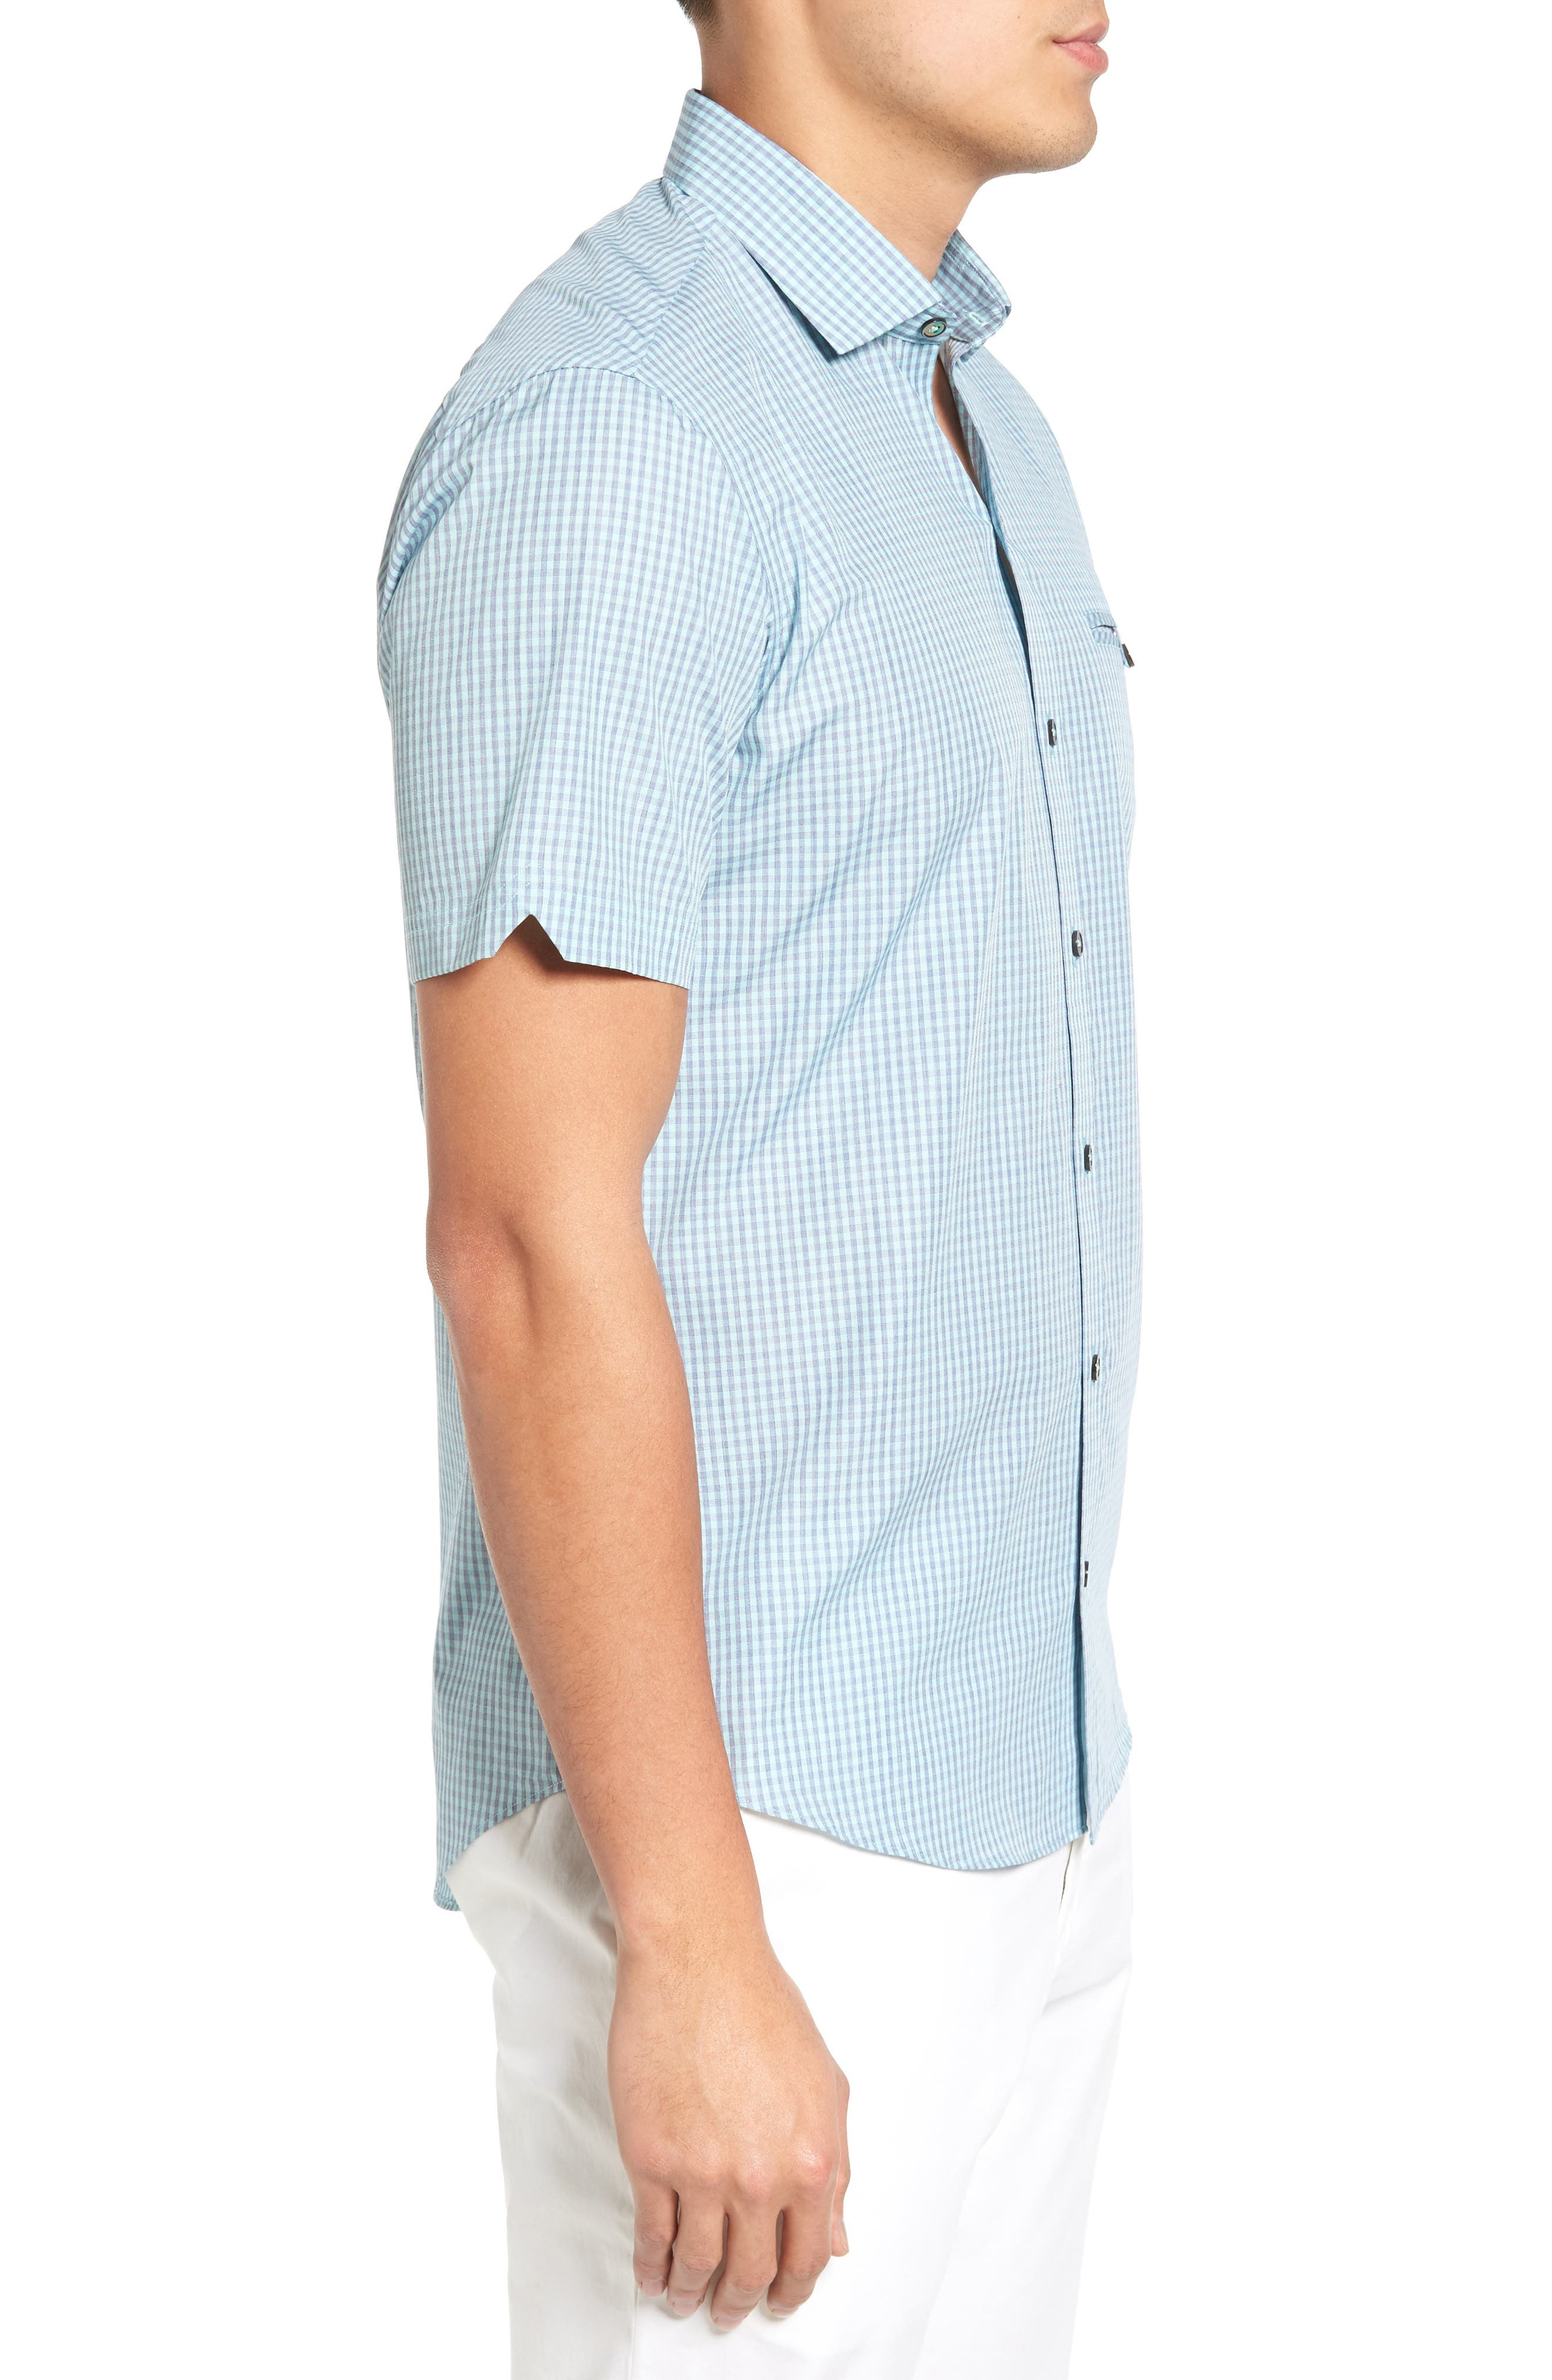 Rappaport Sport Shirt,                             Alternate thumbnail 3, color,                             332